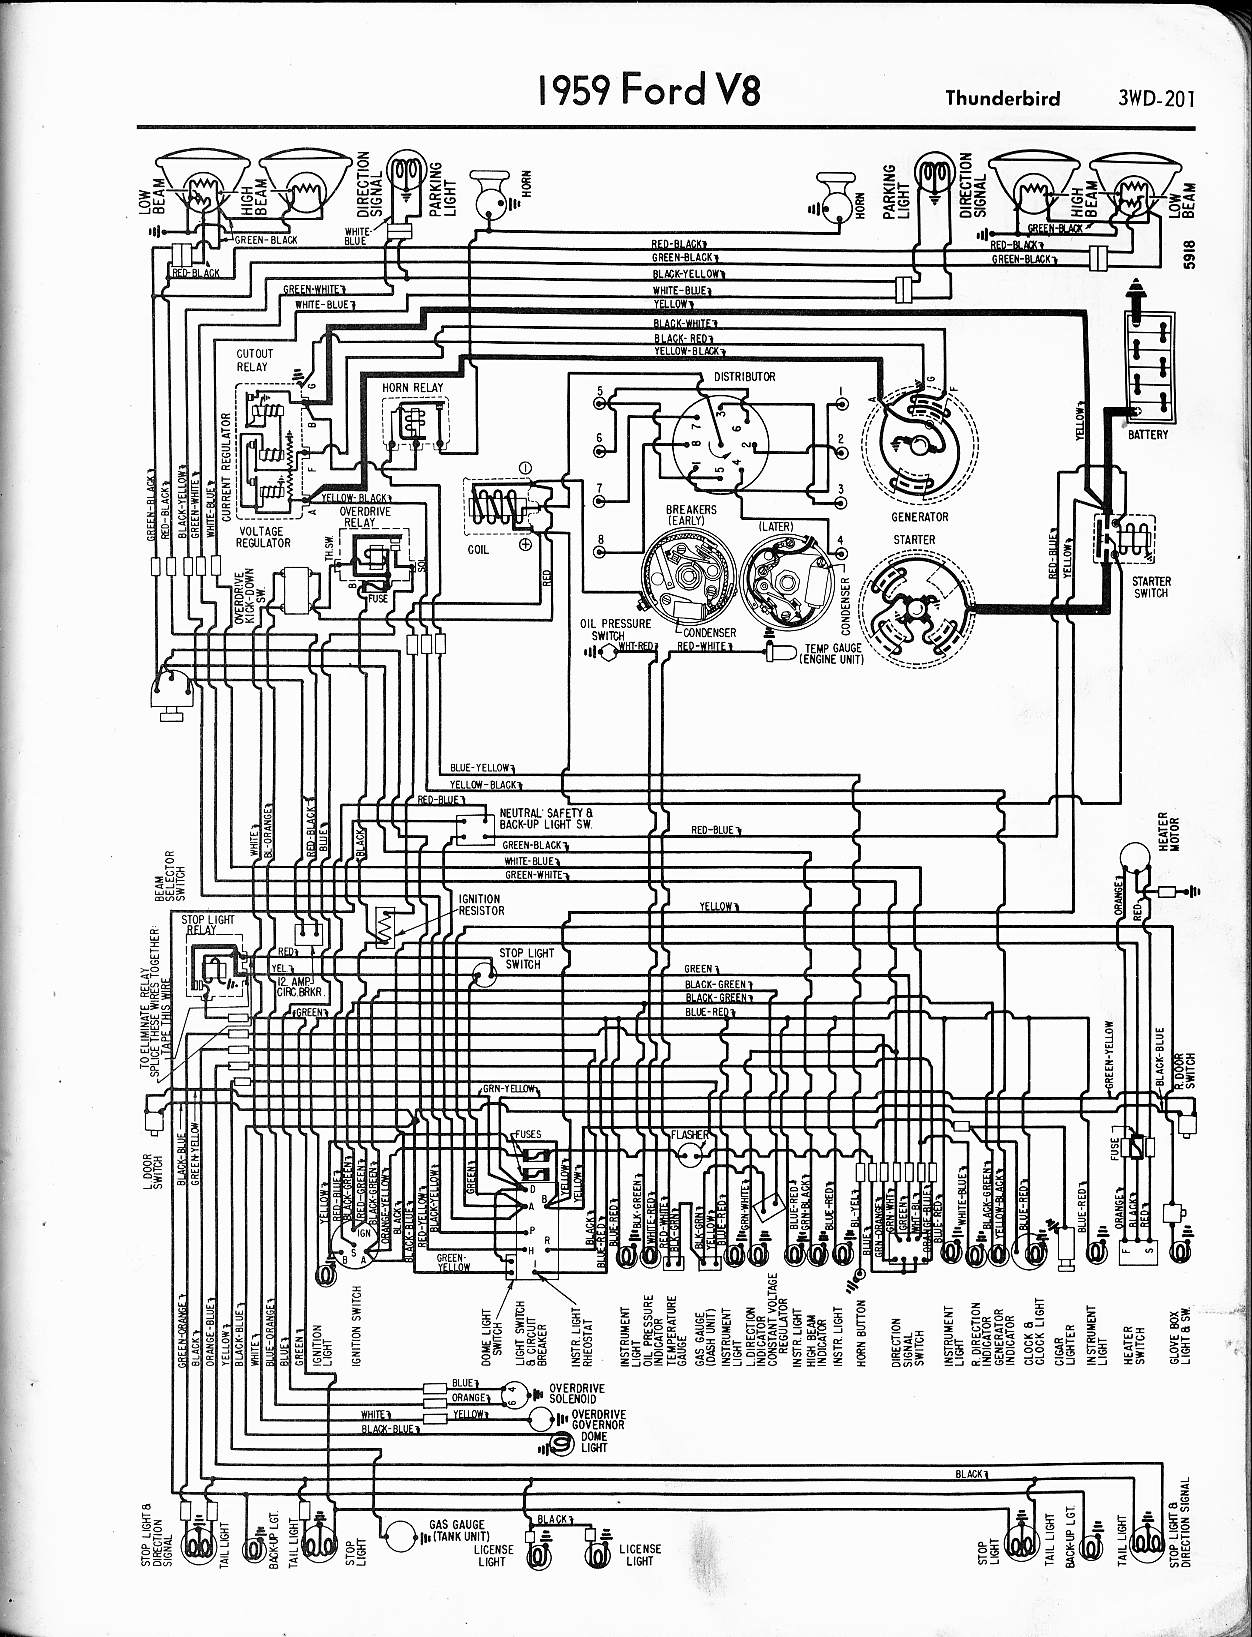 MWire5765 201 57 65 ford wiring diagrams f100 wiring diagram at virtualis.co